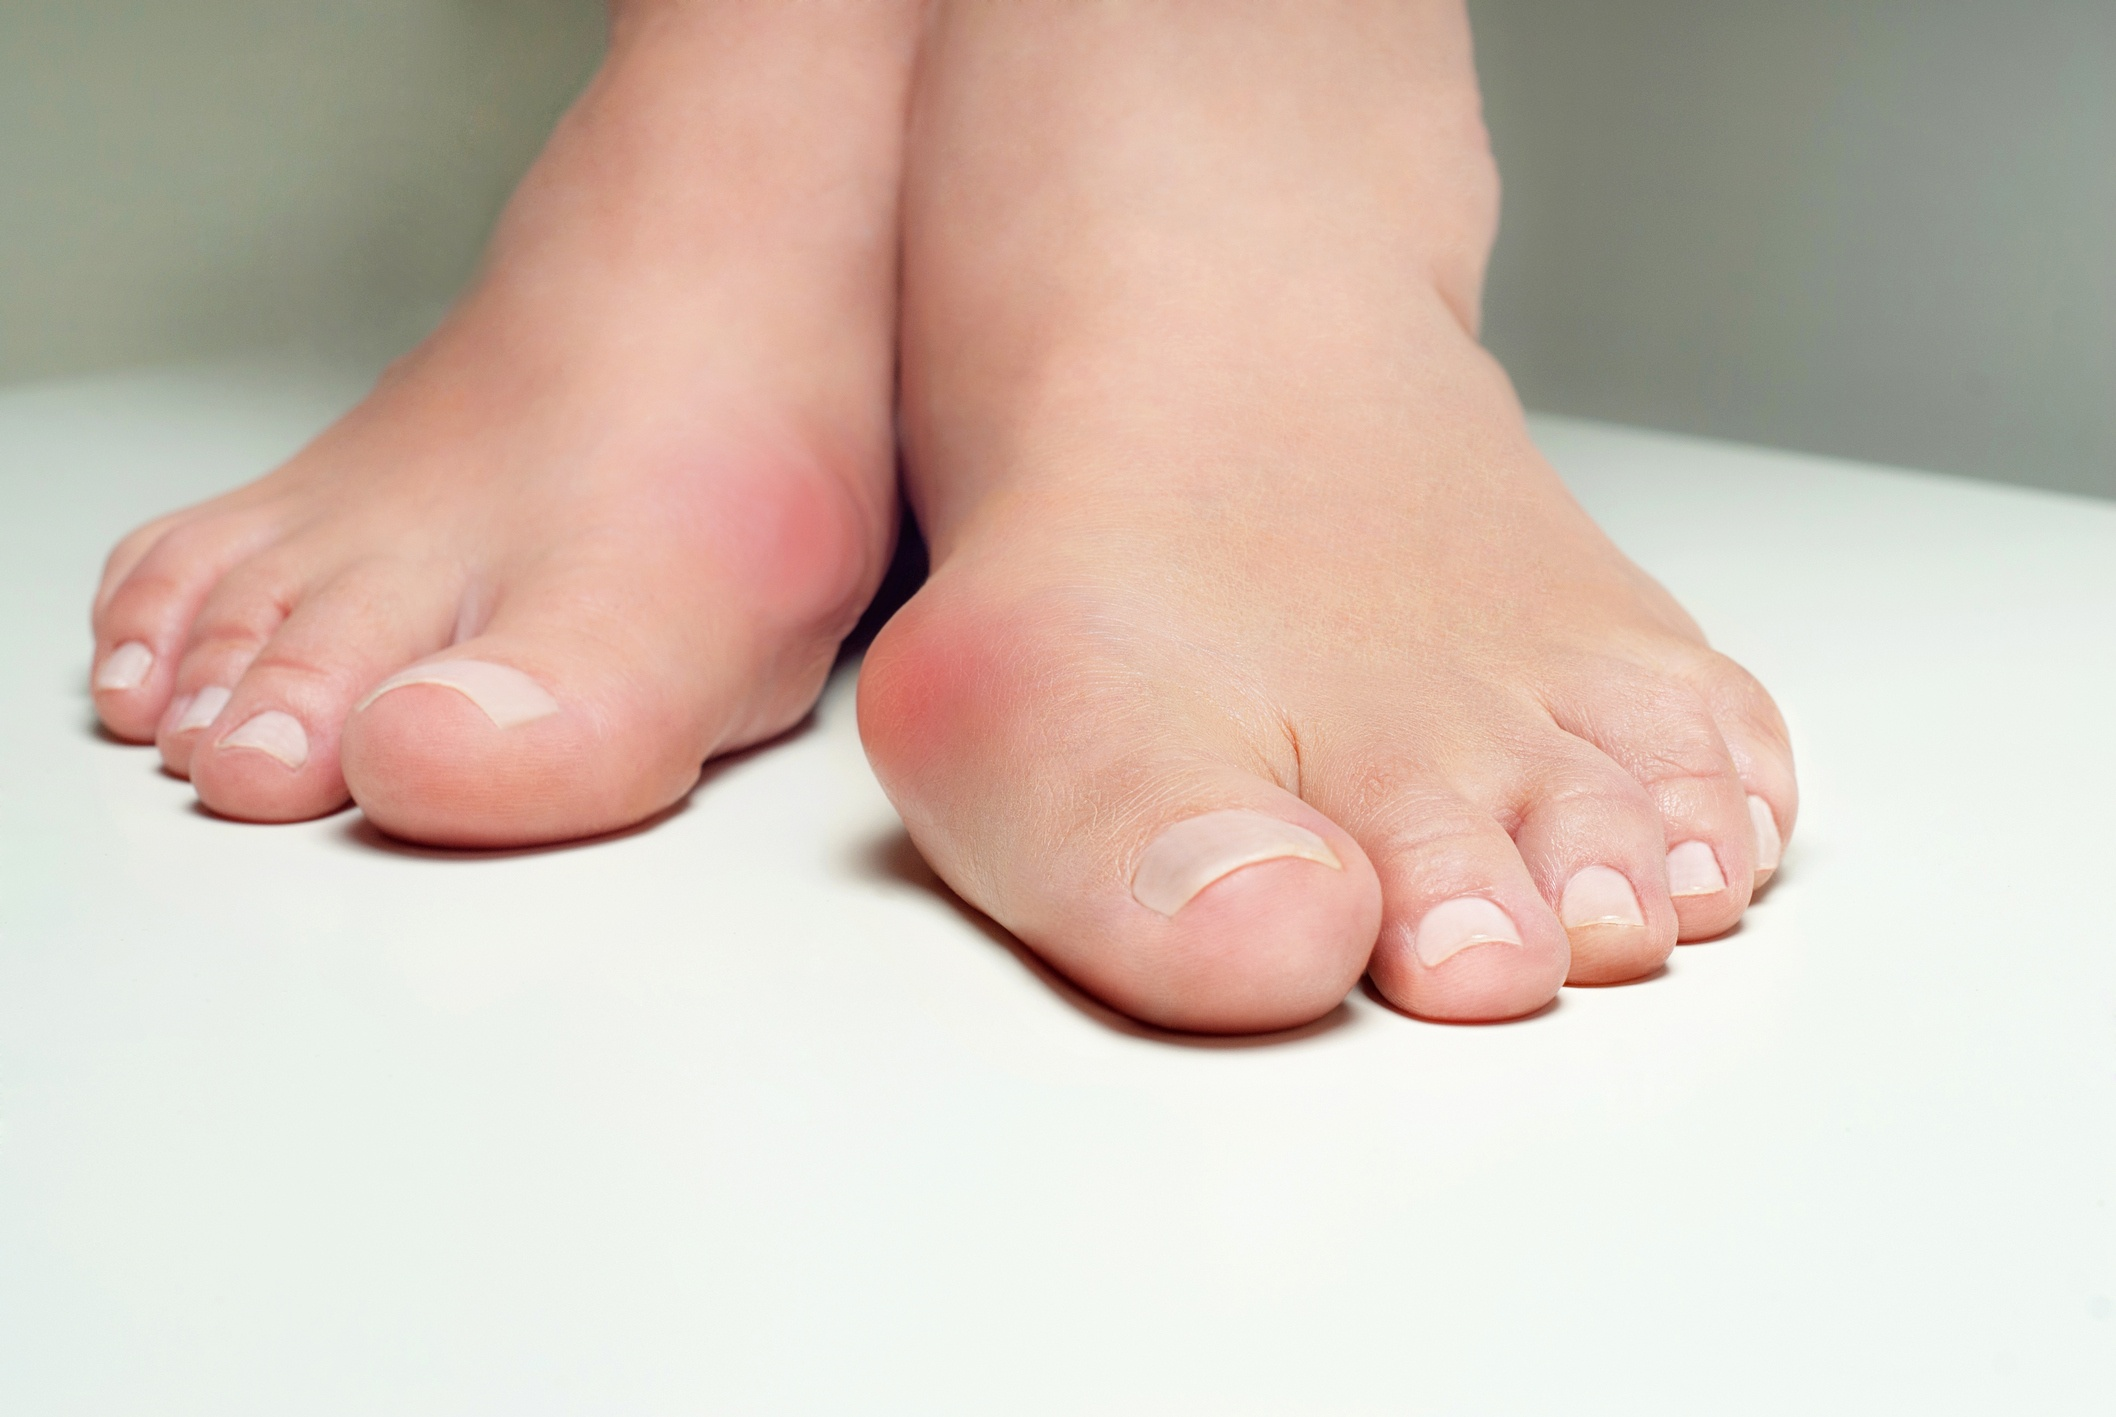 5 Foot Problems That Look Like a Bunion But Aren't | Nagy Footcare